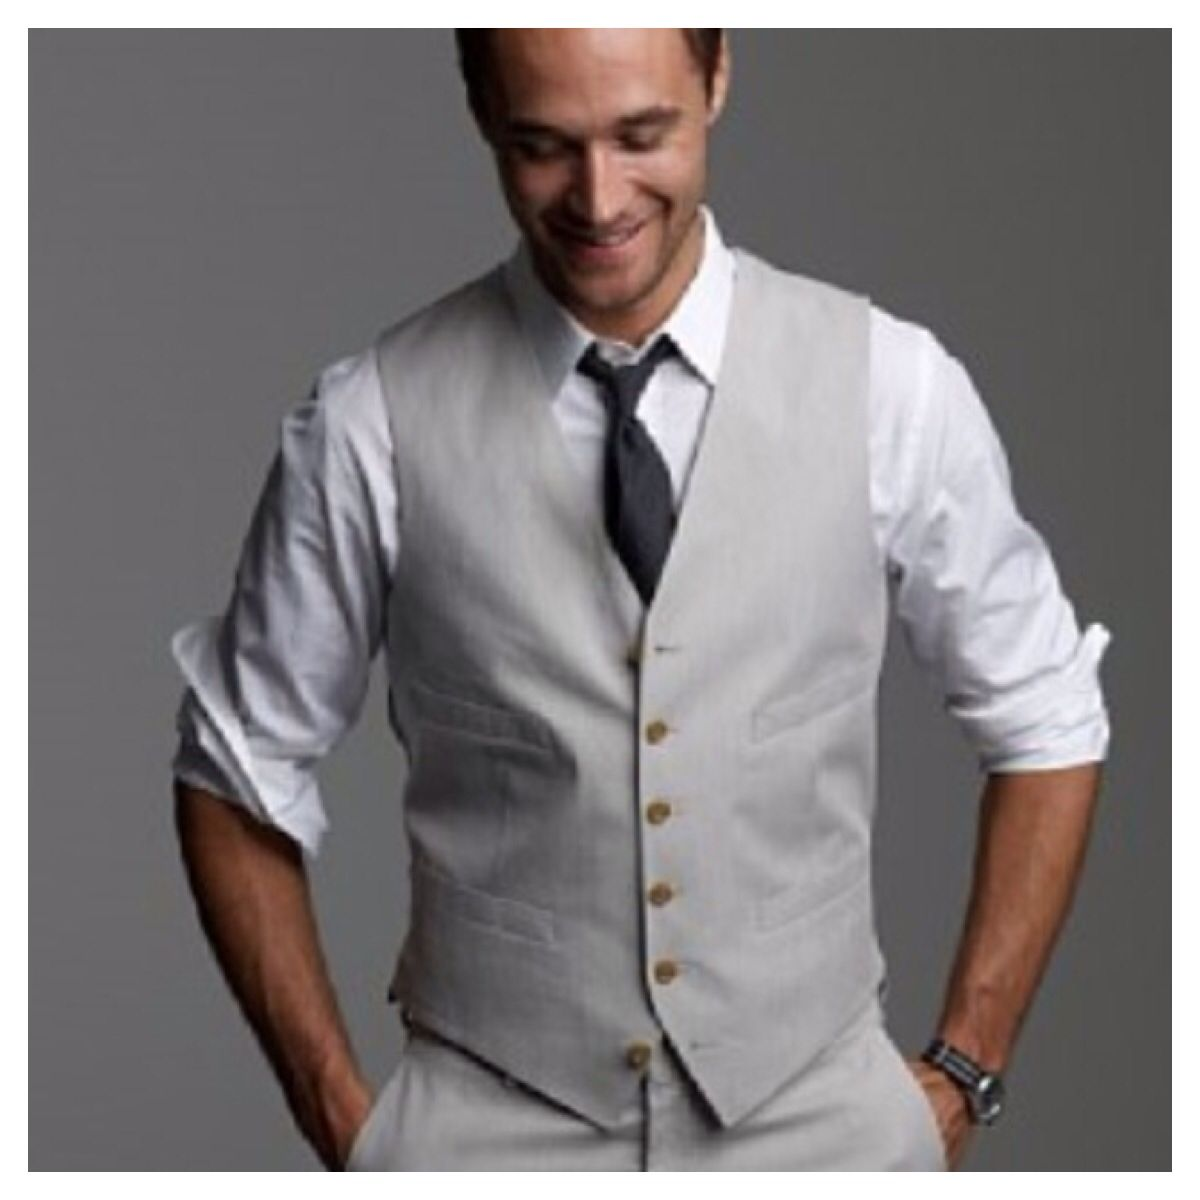 Awesome Light Grey Wedding Suit Images - Styles & Ideas 2018 ...